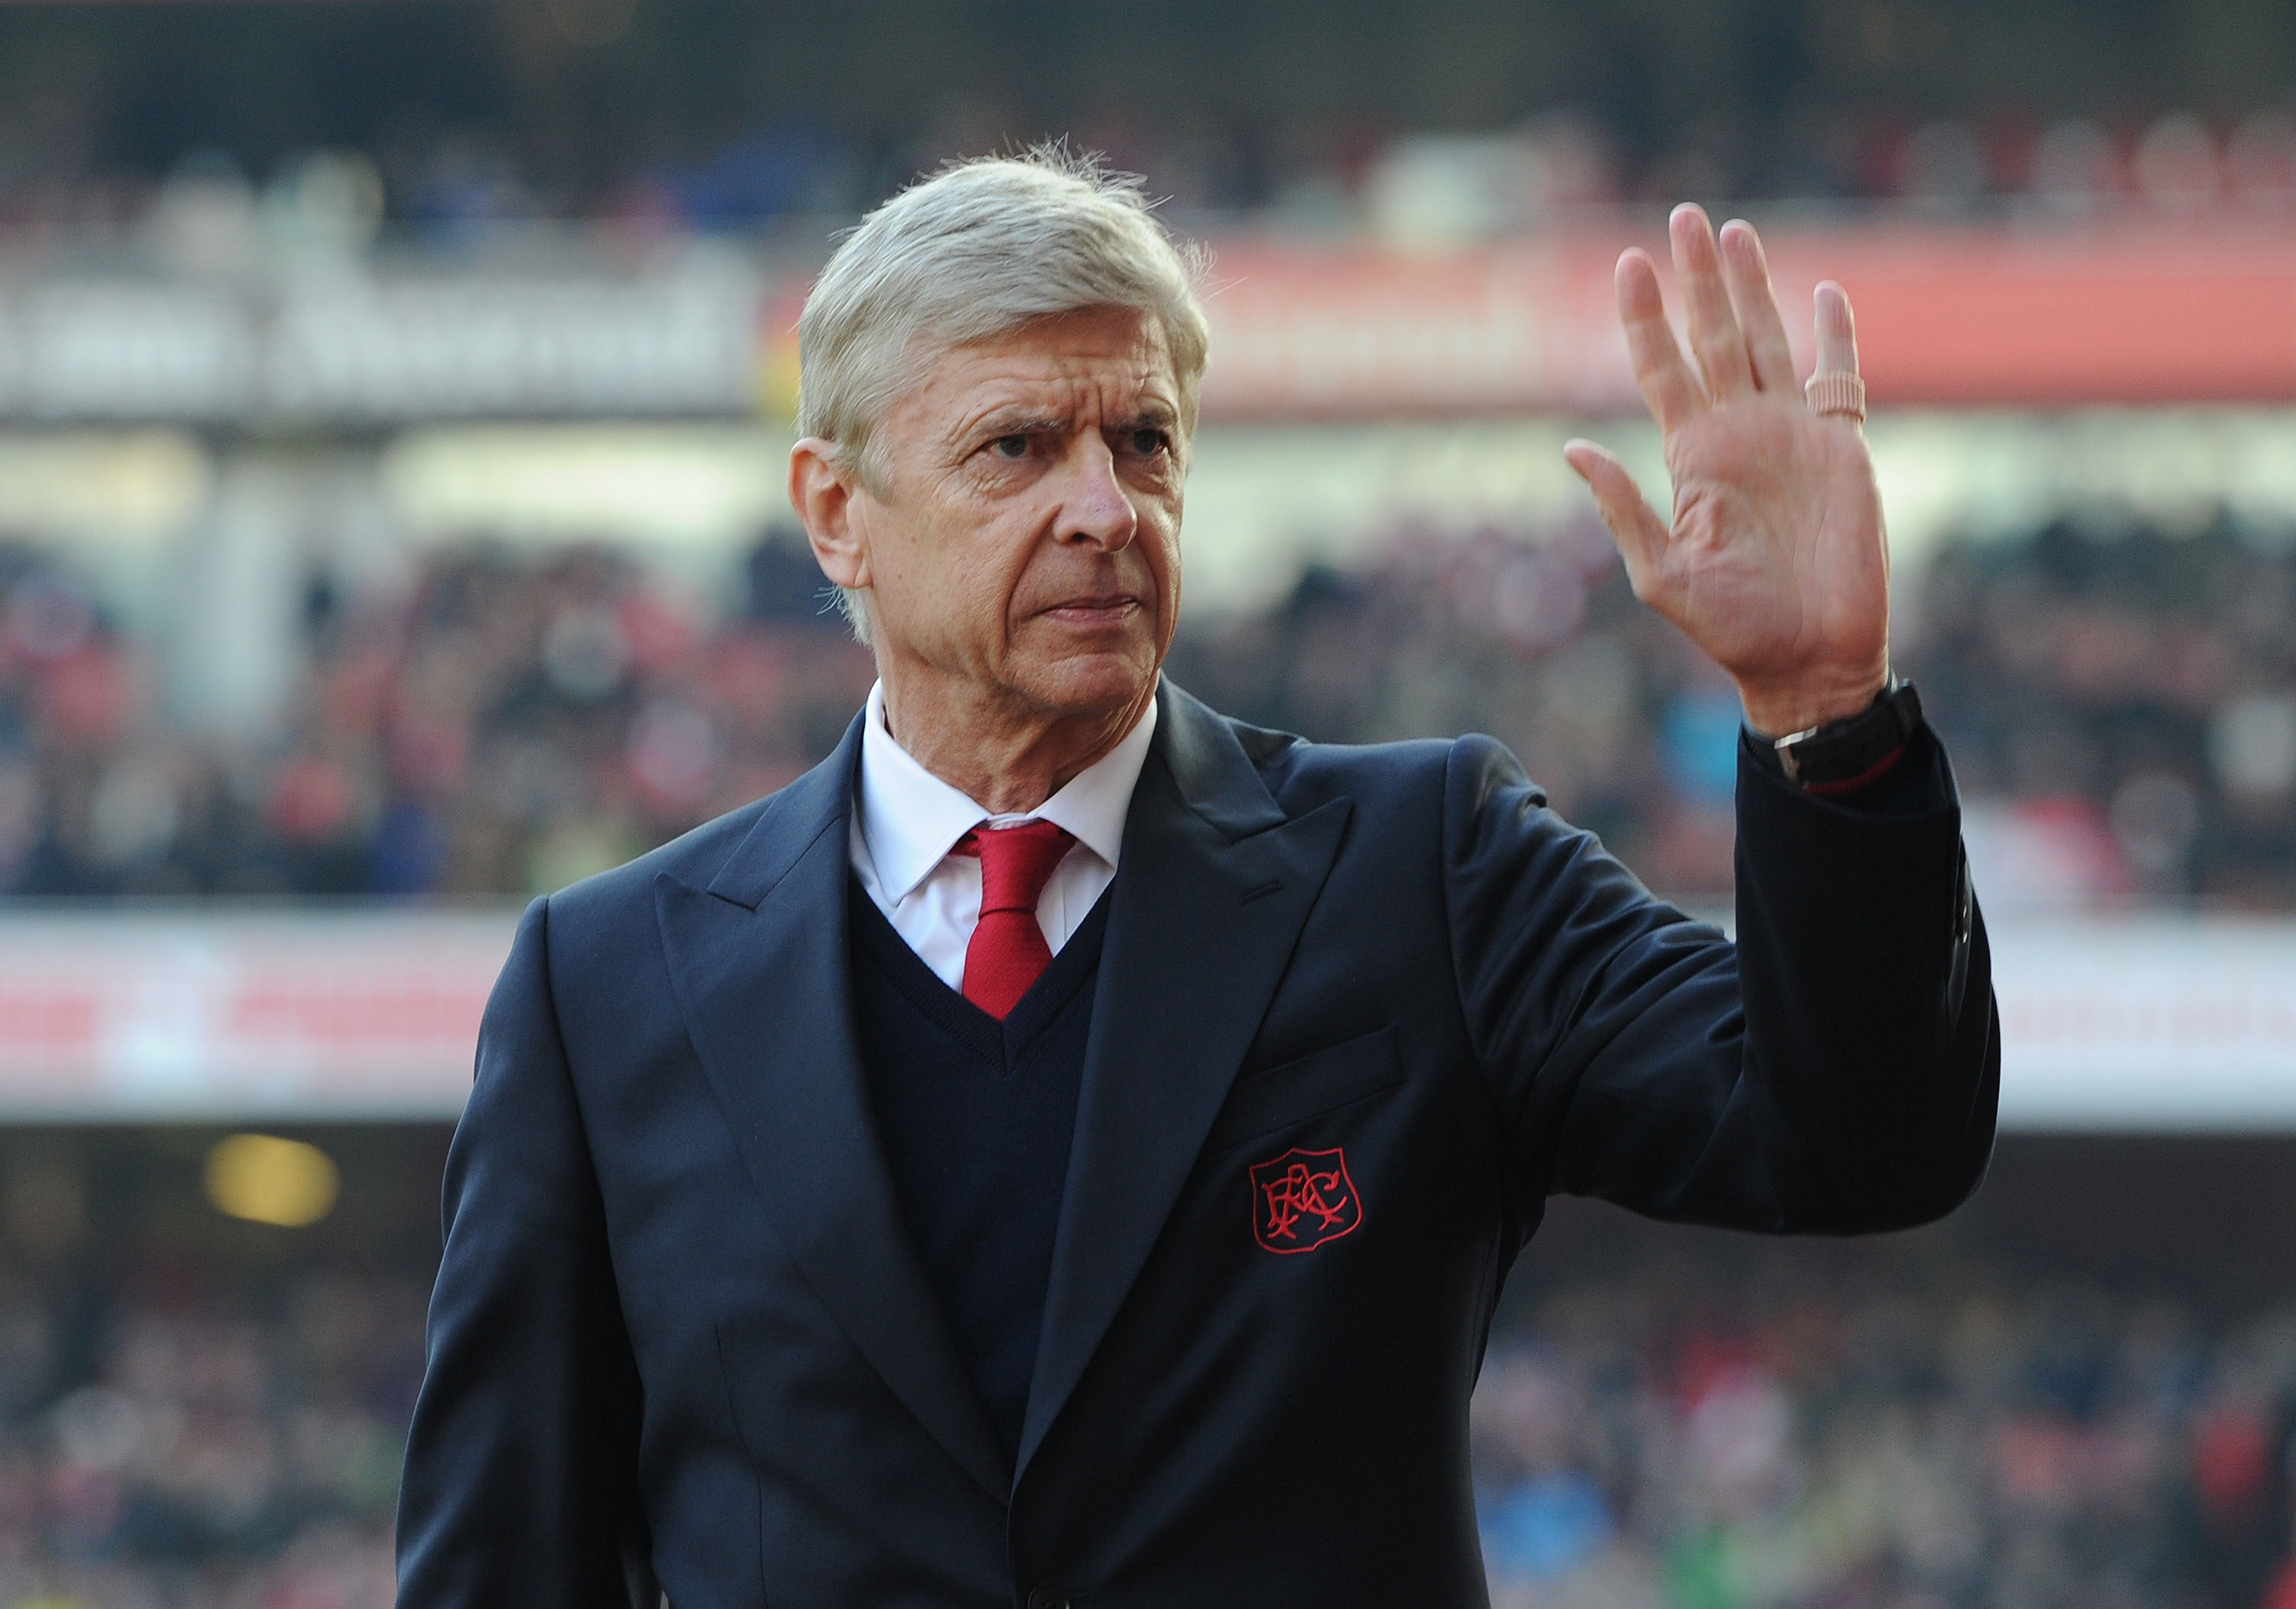 Arsenal could sack Arsene Wenger if Gunners lose to Hull City this weekend, says Paul Merson